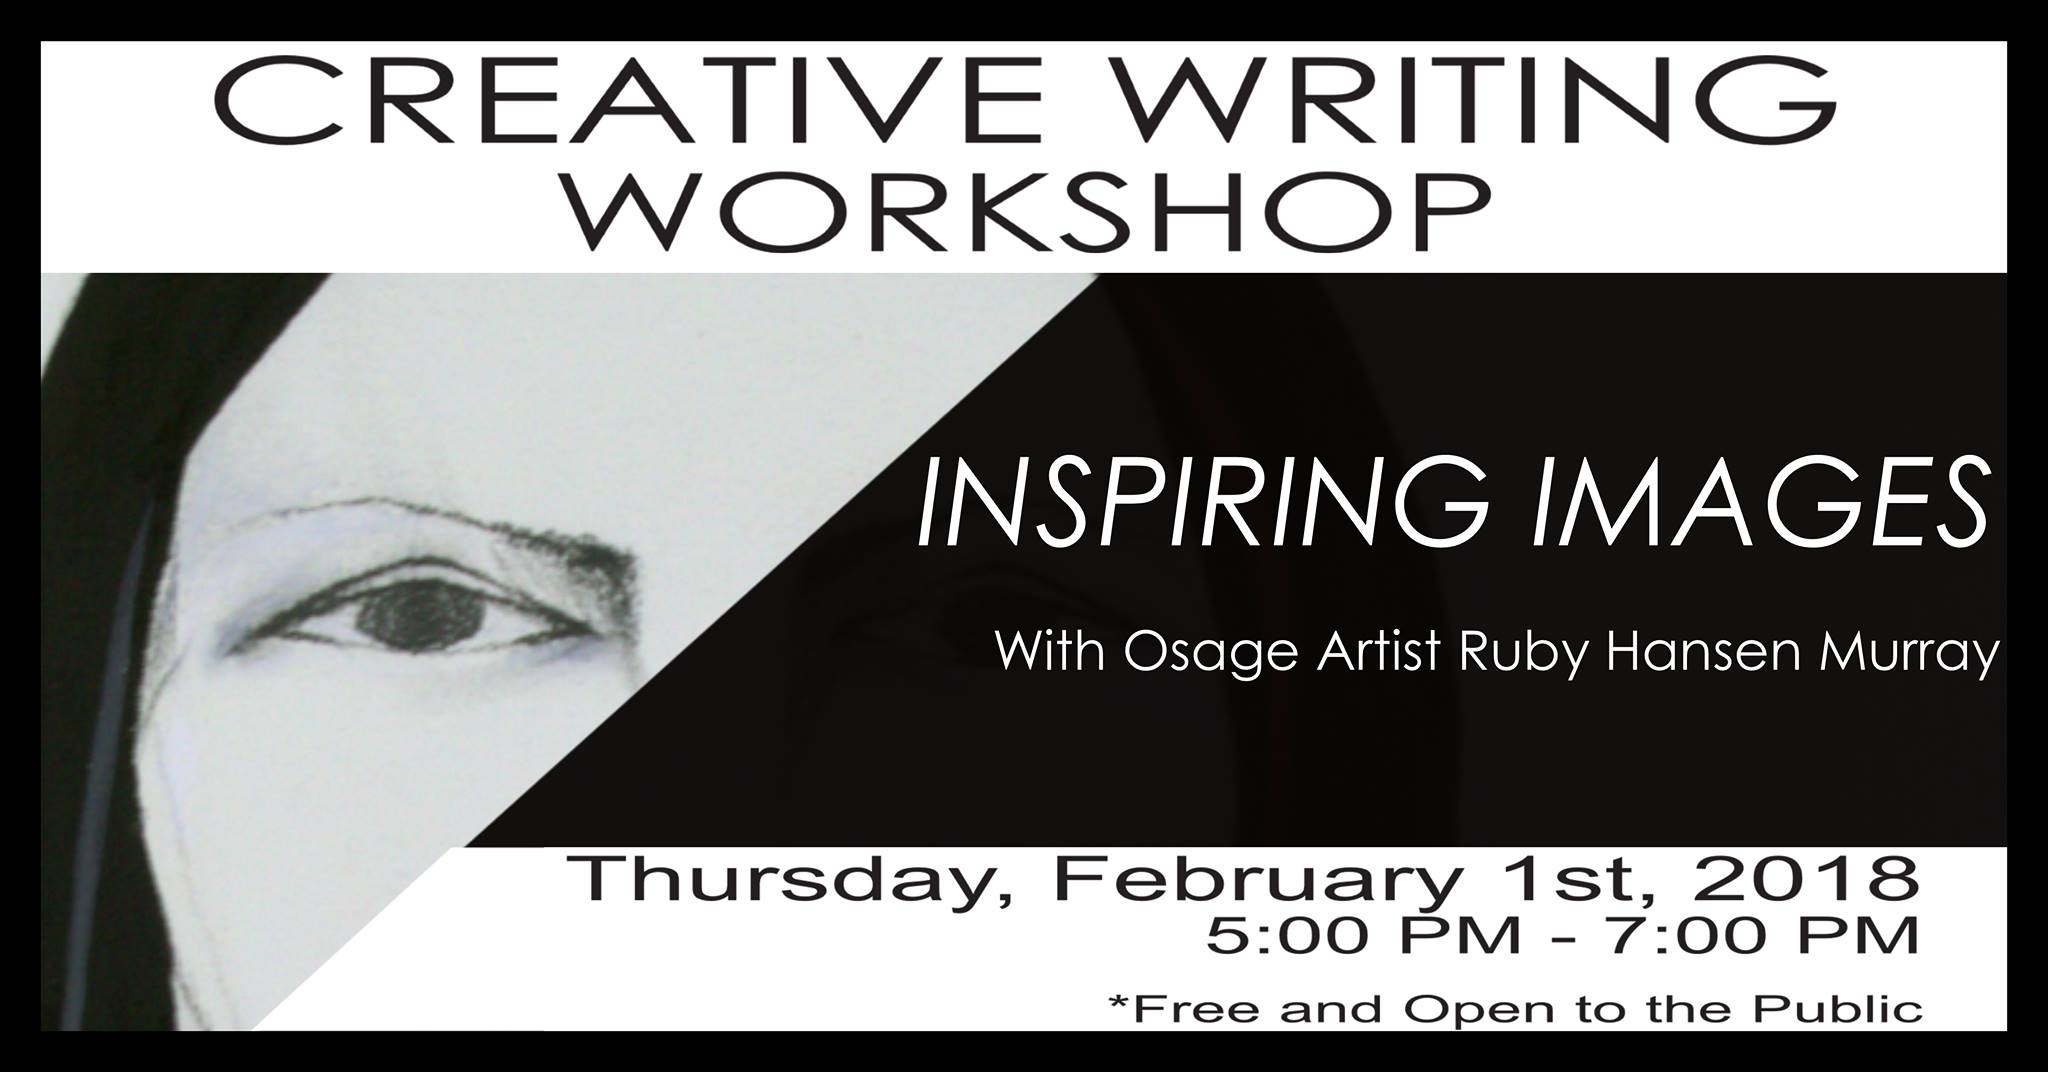 Creative writing workshop scheduled Feb. 1 at ON Museum